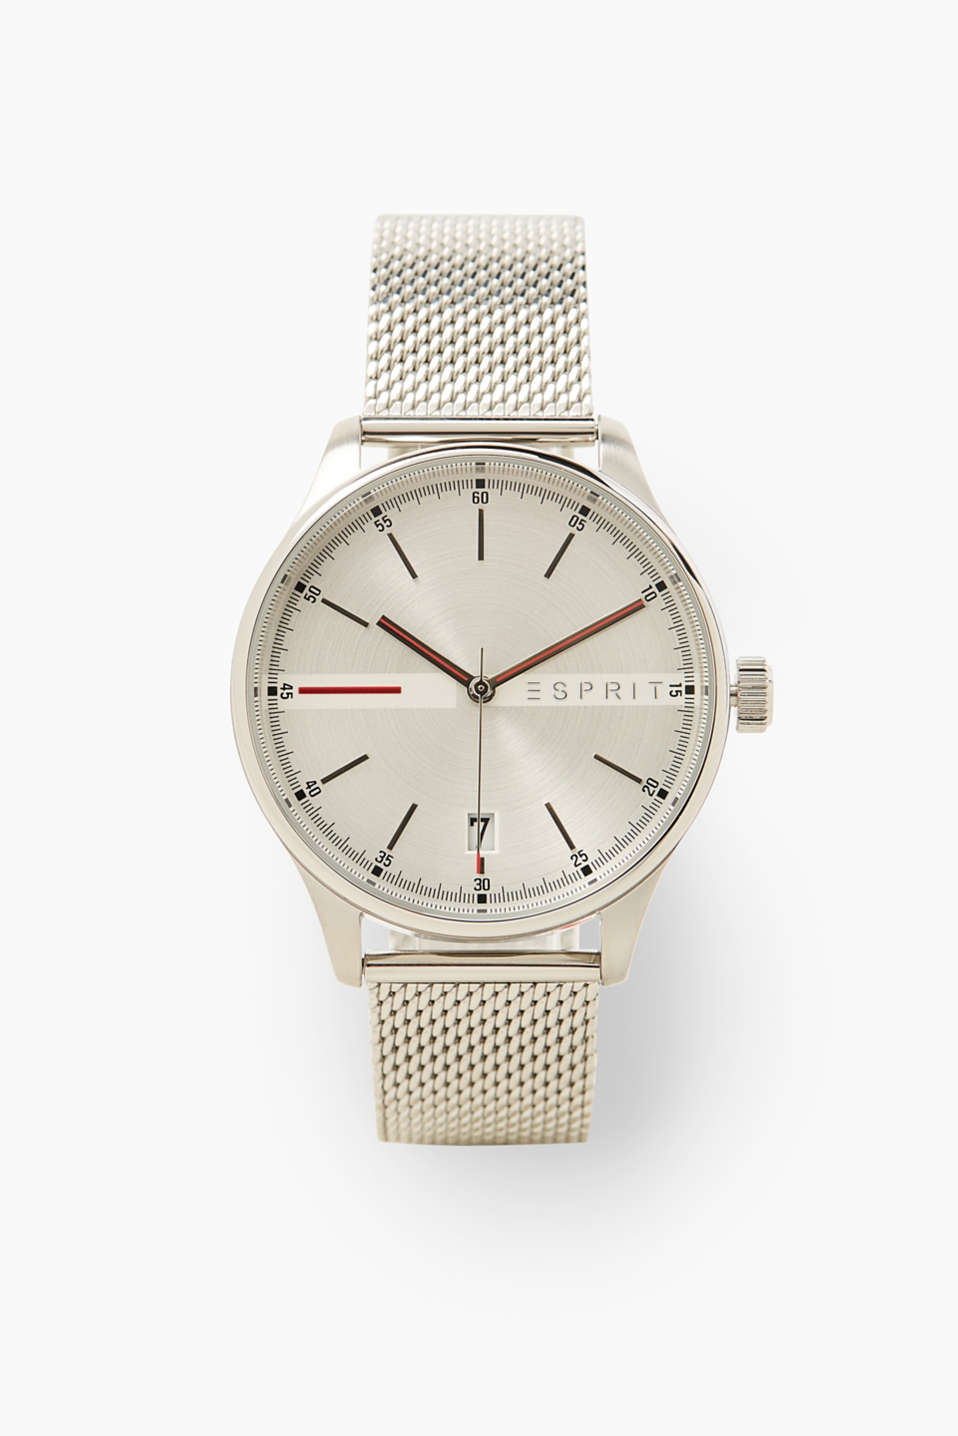 Esprit - Stainless steel watch with Milanese strap